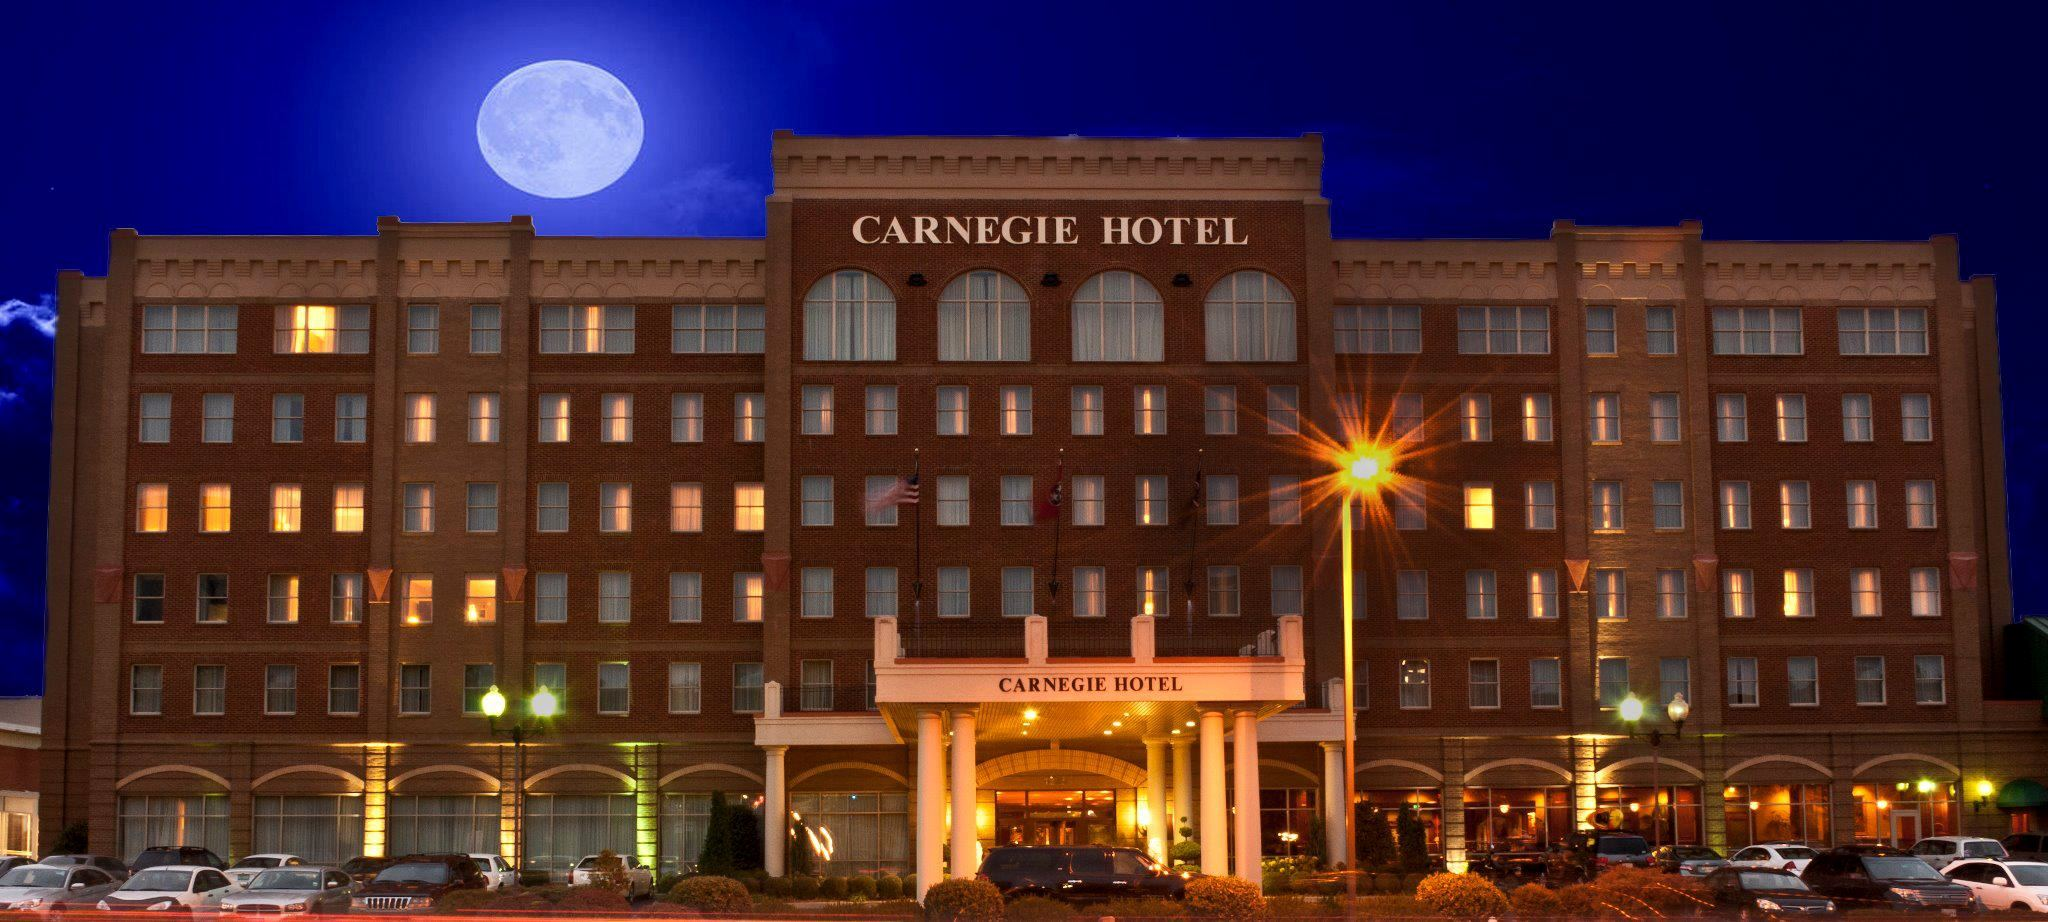 The Carneige Hotel - 1